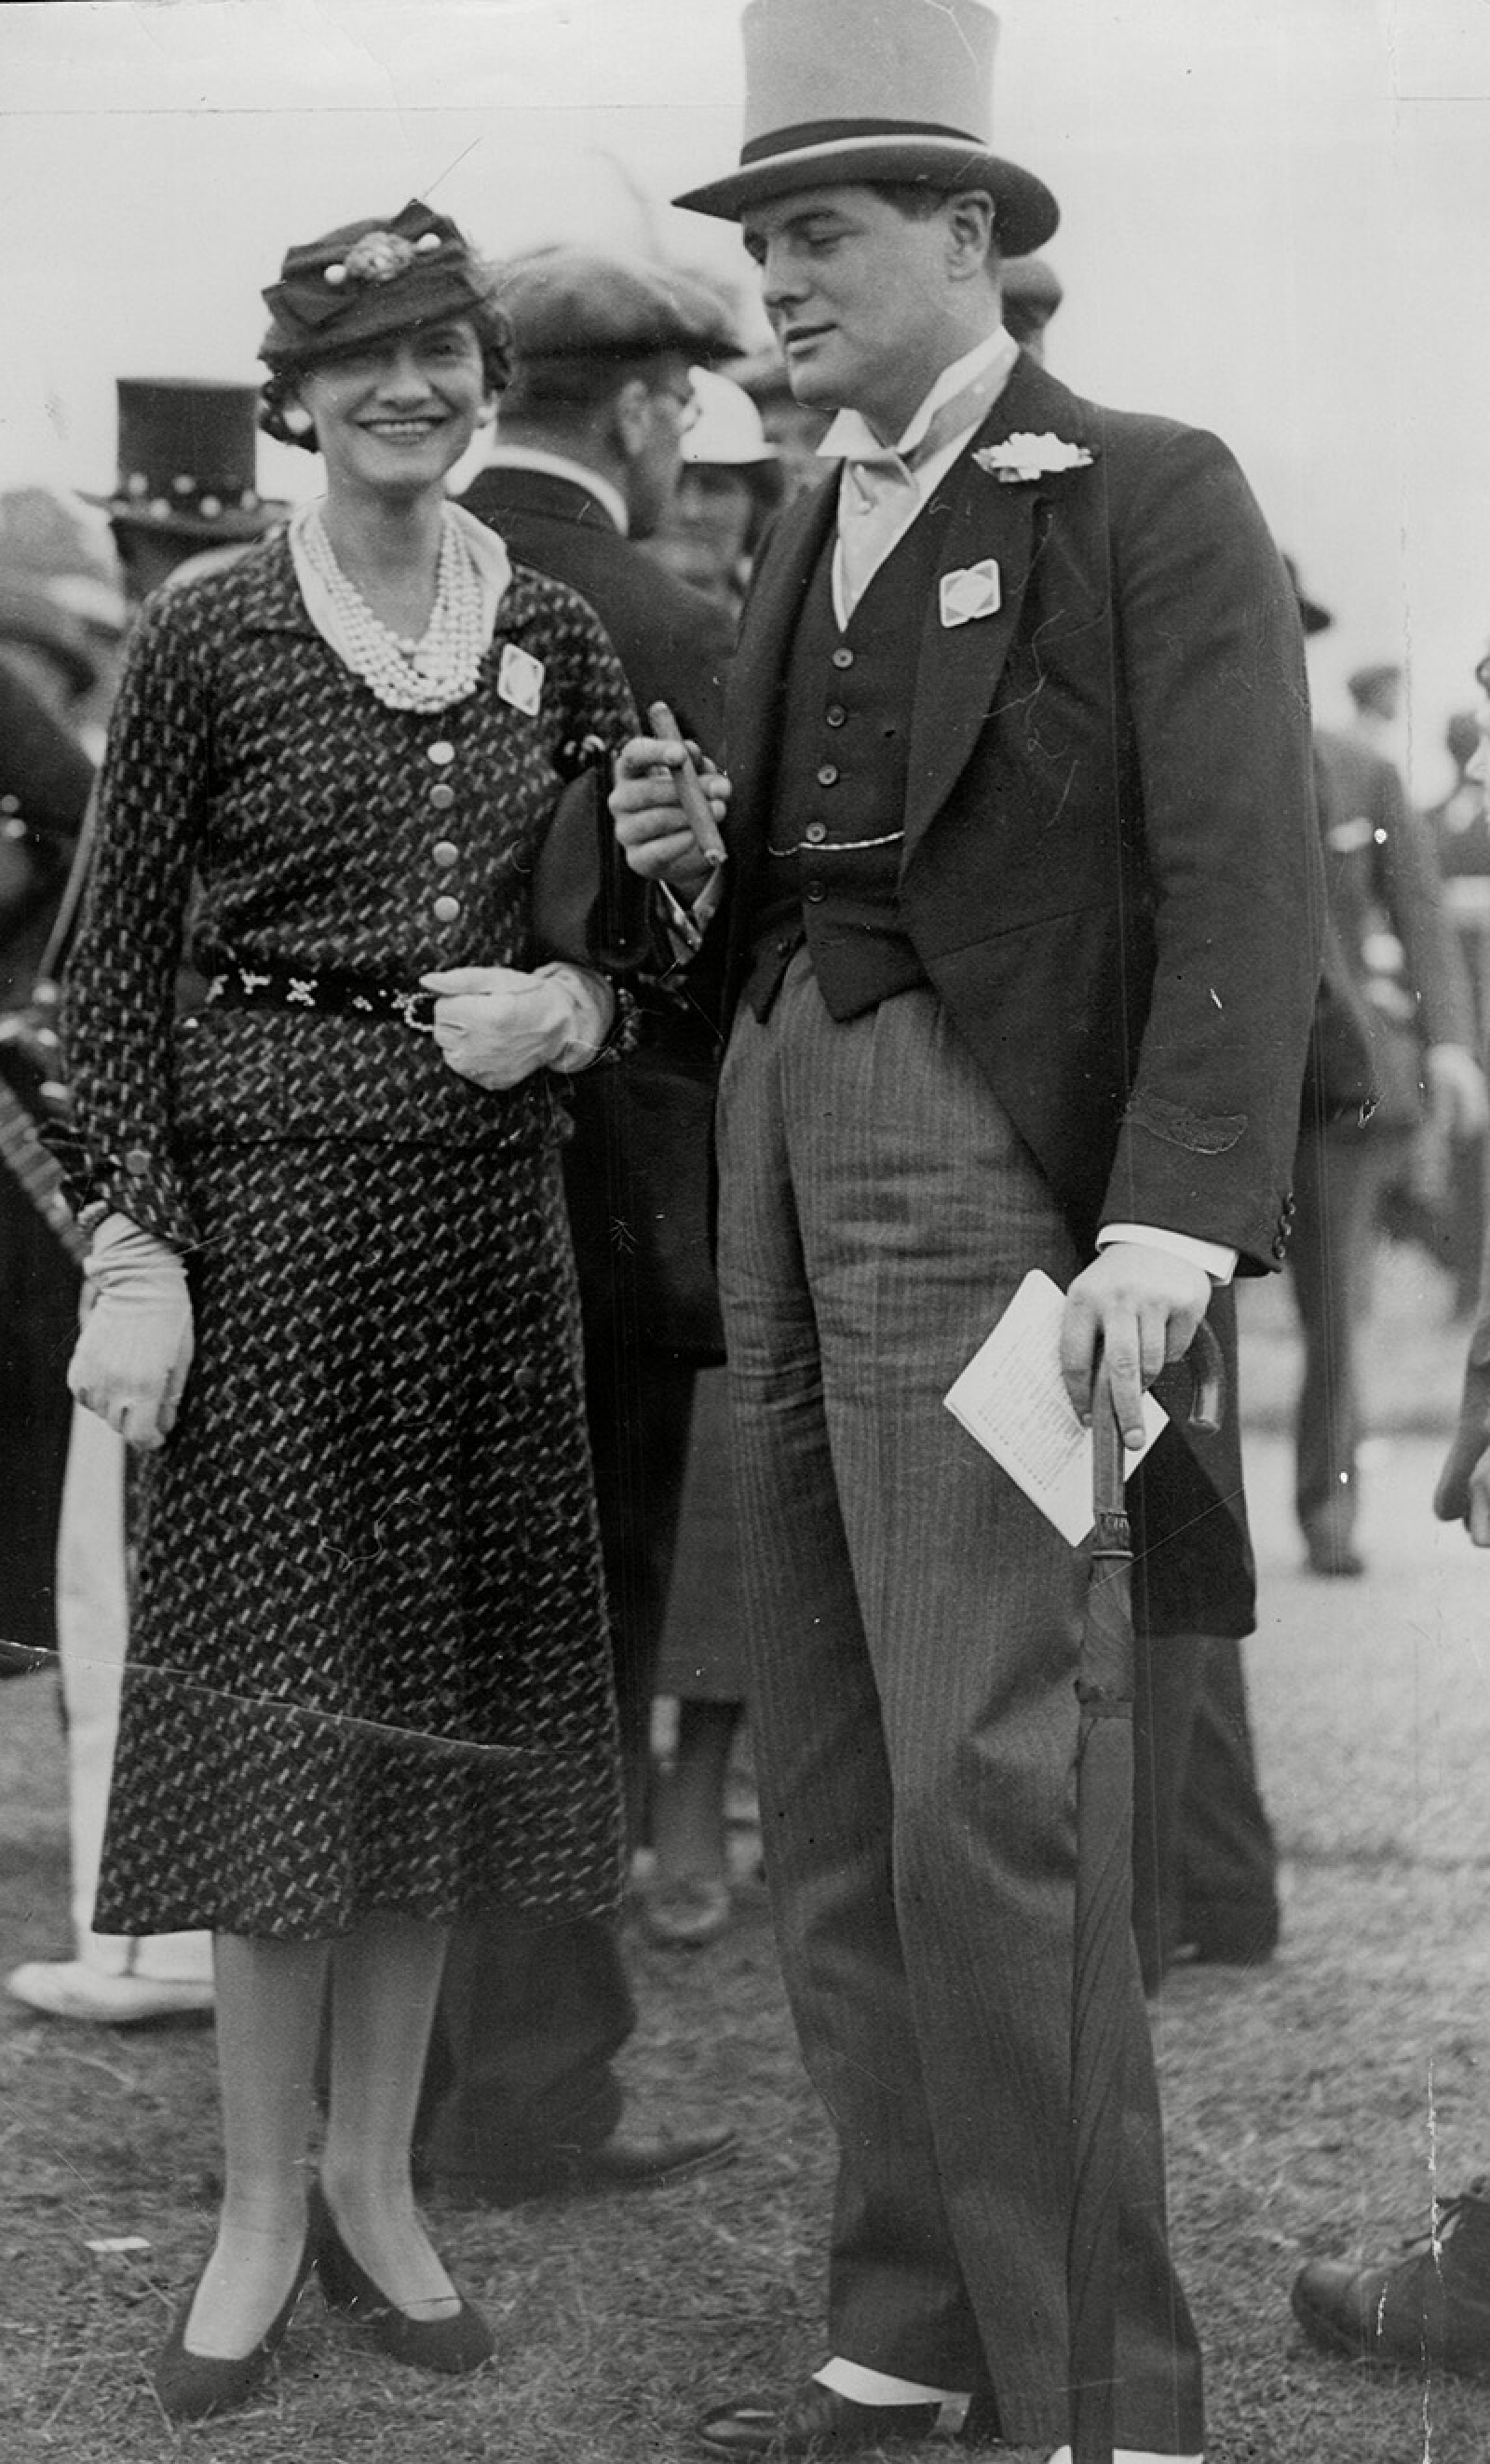 Politician Randolph Churchill With Fashion Designer Coco Chanel At Ascot Randolph Frederick Edward Spencer-churchill Mbe (28 May 1911 A 6 June 1968) Was The Son Of British Prime Minister Winston Churchill And His Wife Clementine. He Was A Conservativ